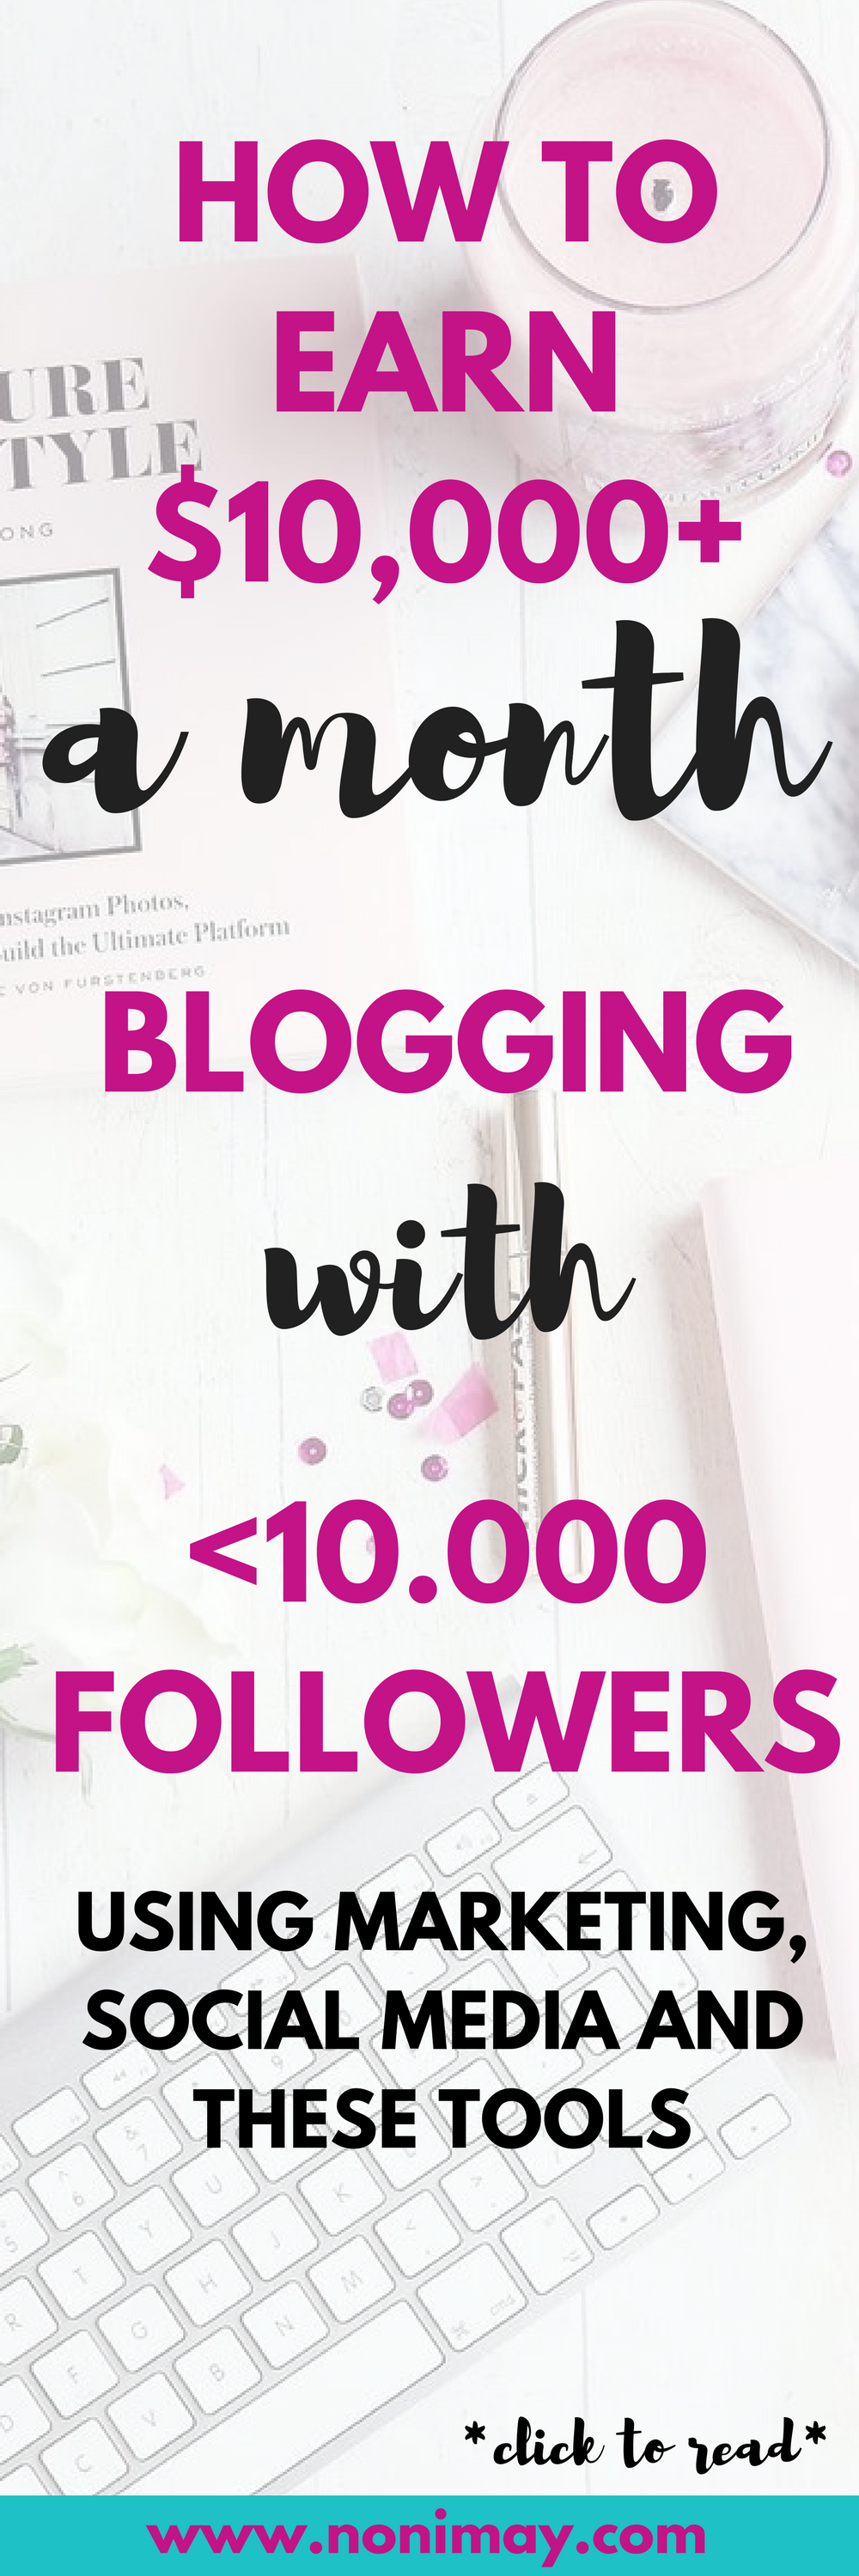 How to earn $10,000 a month blogging with less than 10.000 followers using marketing, scoial media and thesse tools